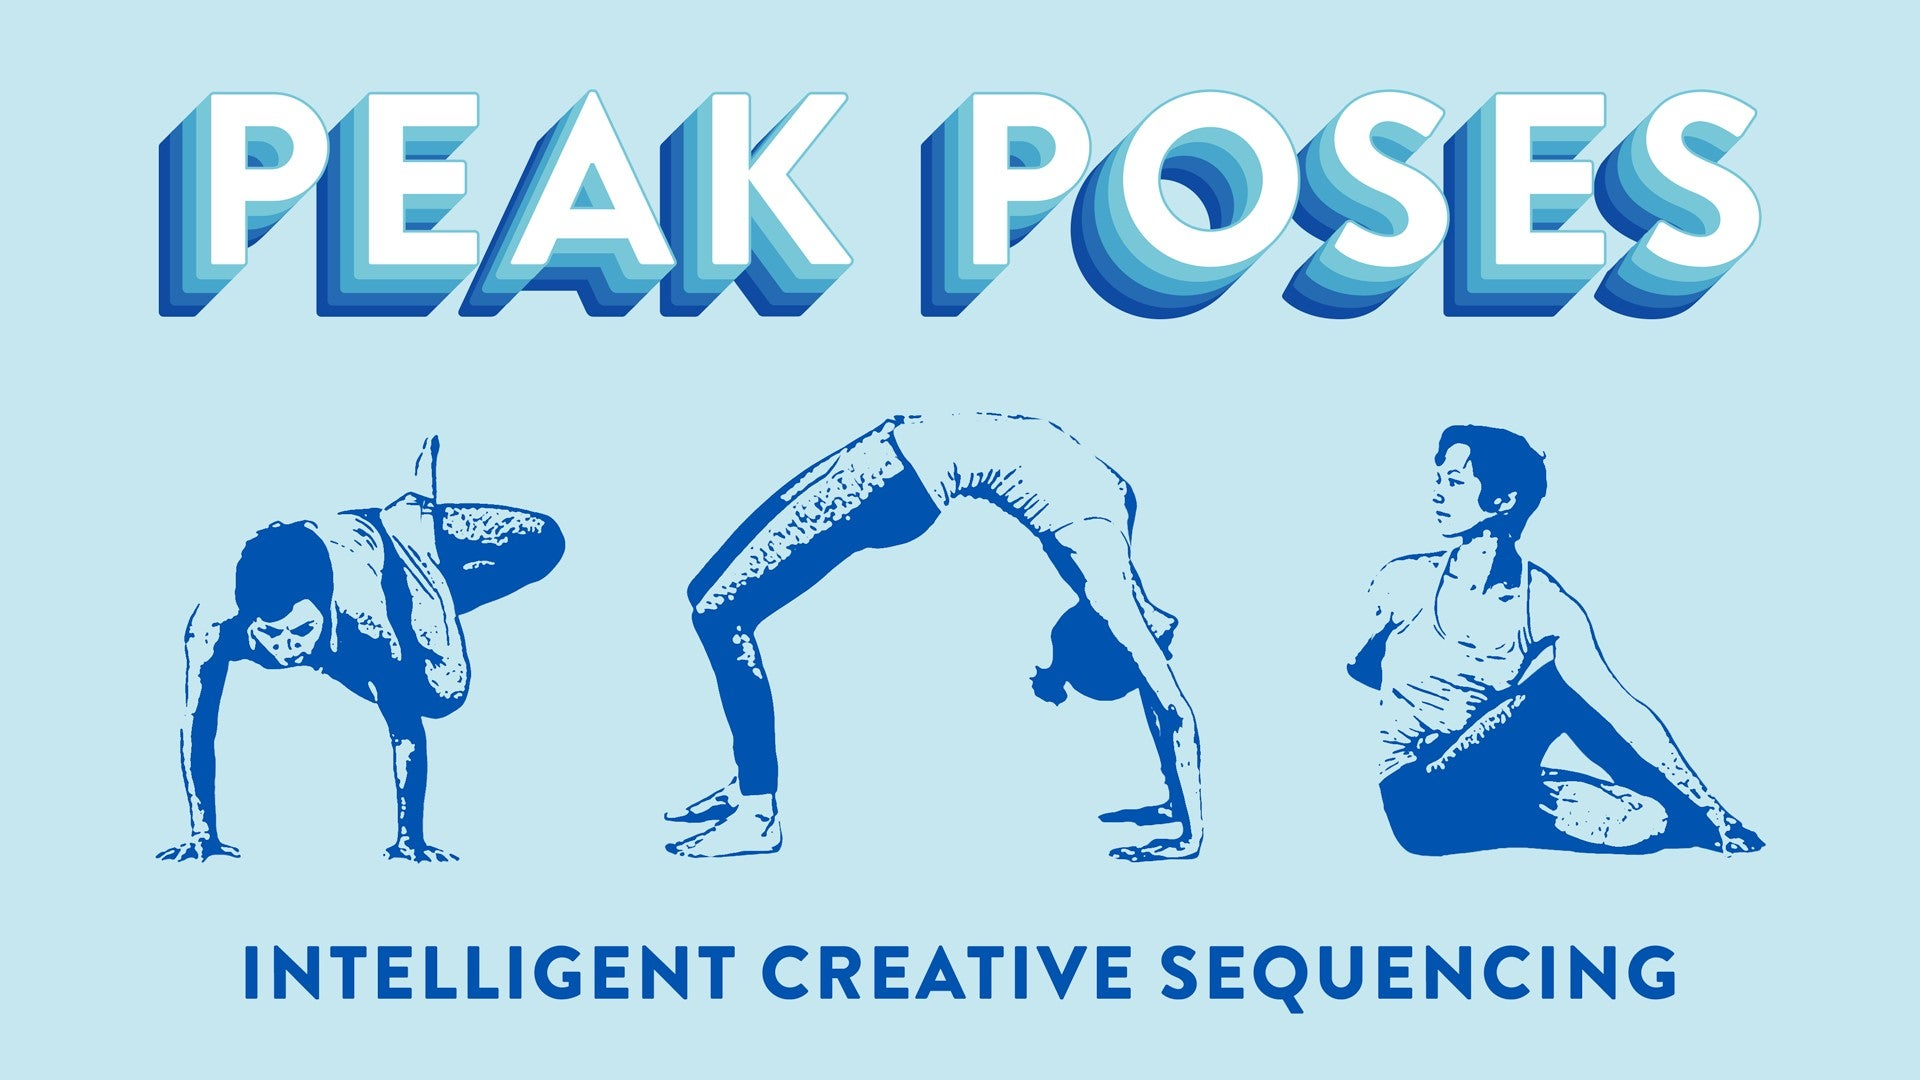 Peak Poses Artwork